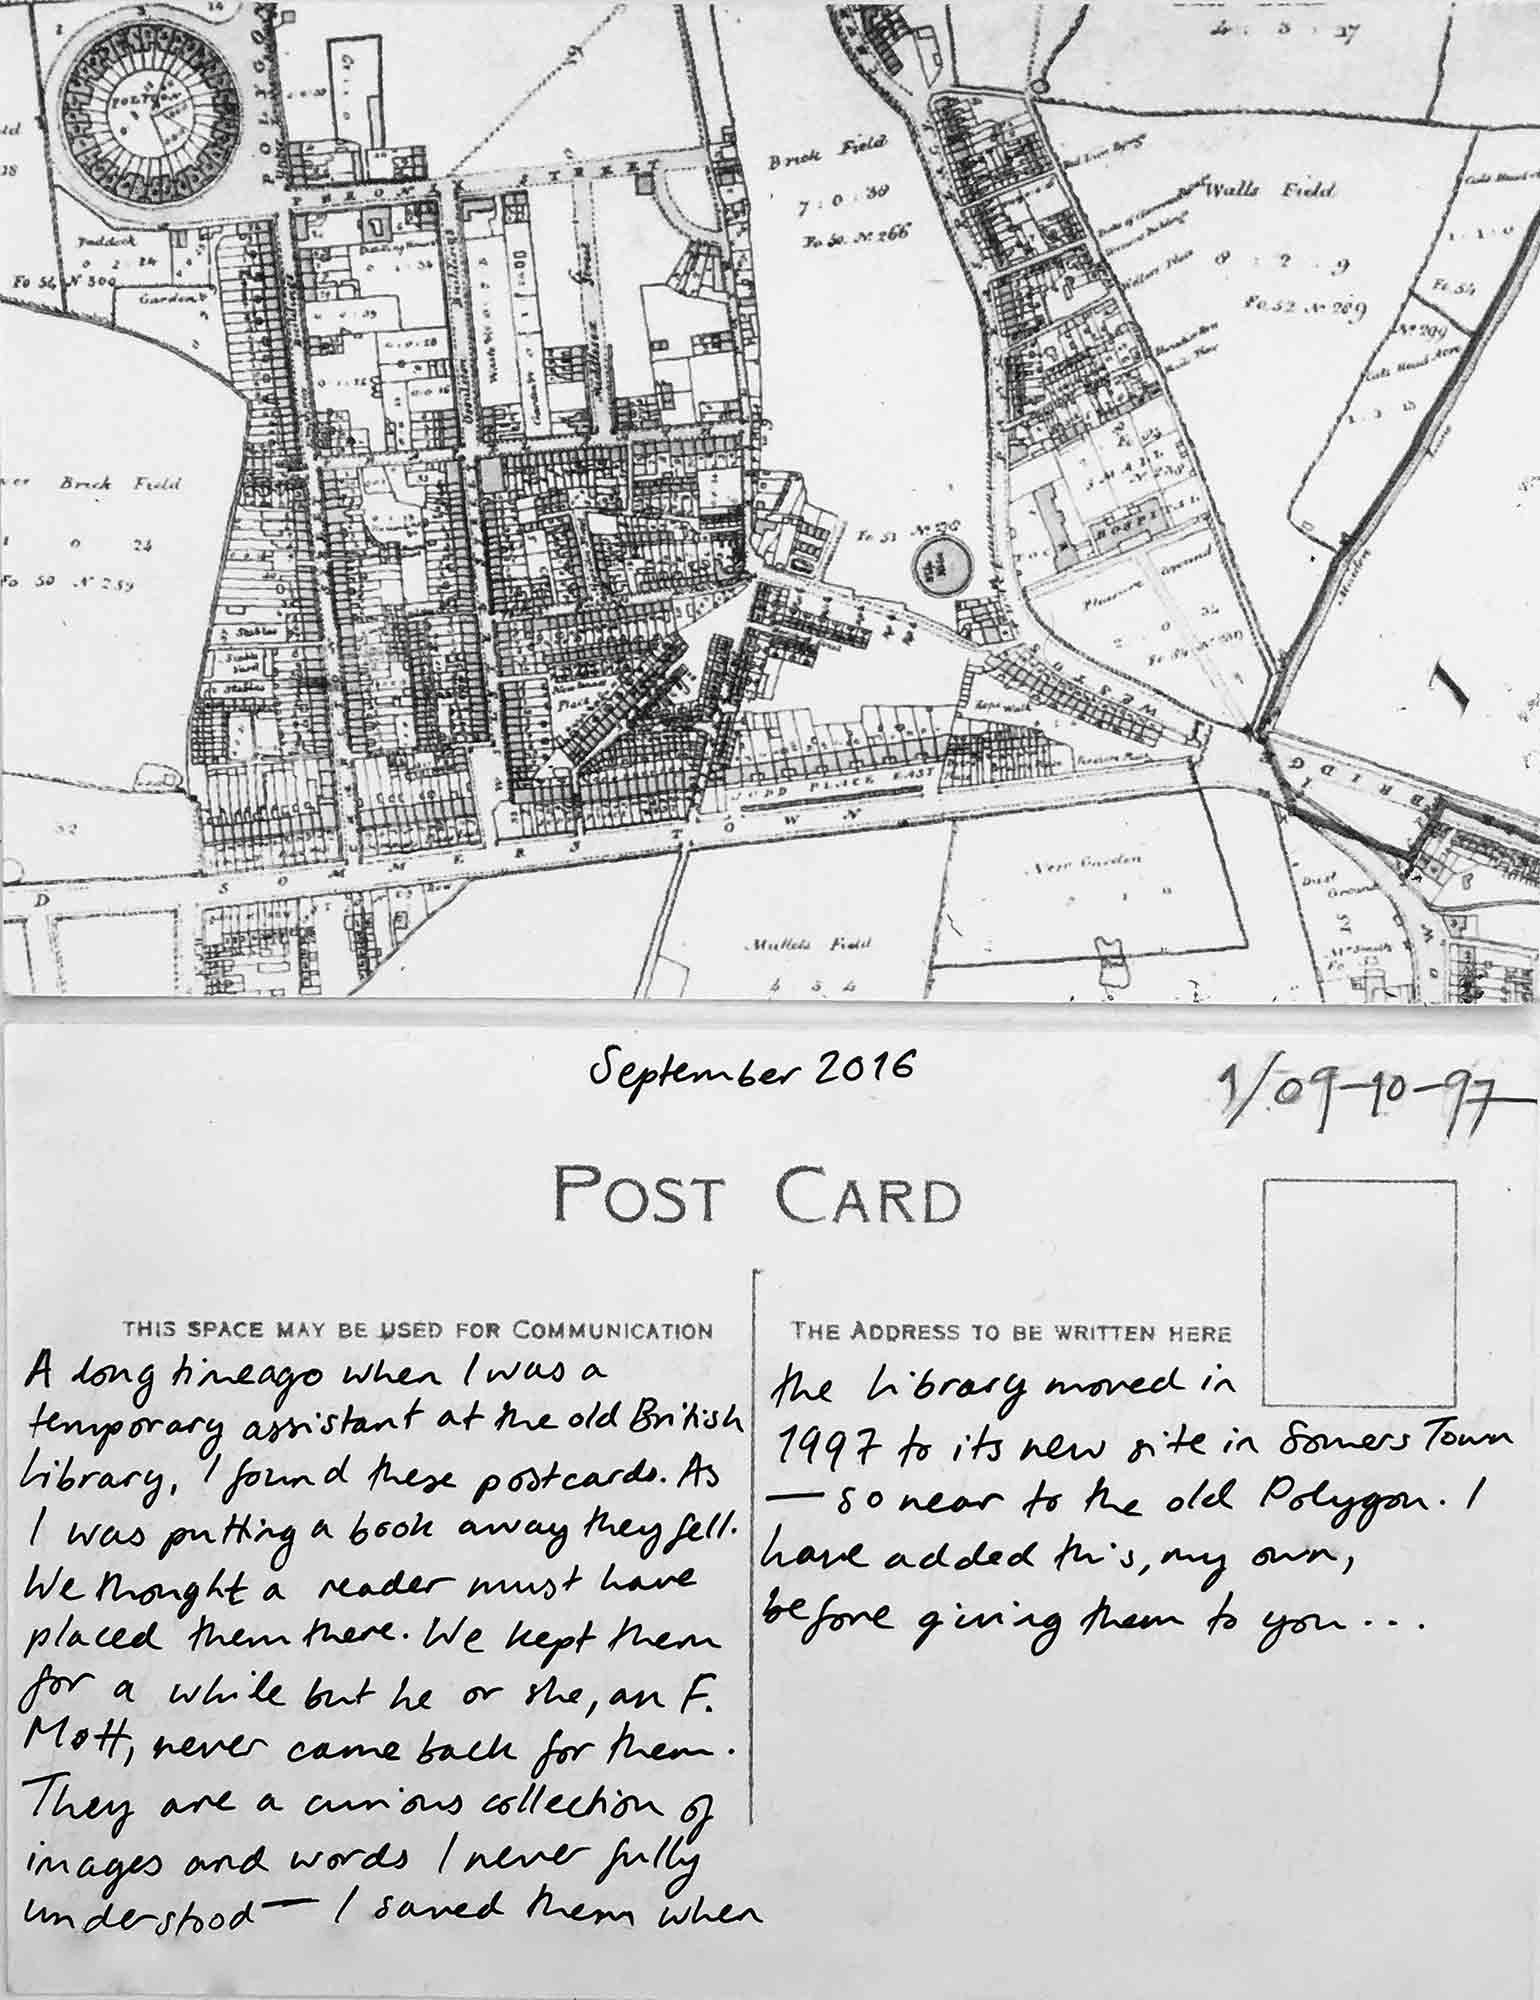 Postcard 1. Section of map, showing north of Euston Road and Somers Town of St Pancras by John Thompson, c. 1803. (King's Cross and north of Euston Road). Public Domain. Postcard and text by Emma Cheatle, 2016.